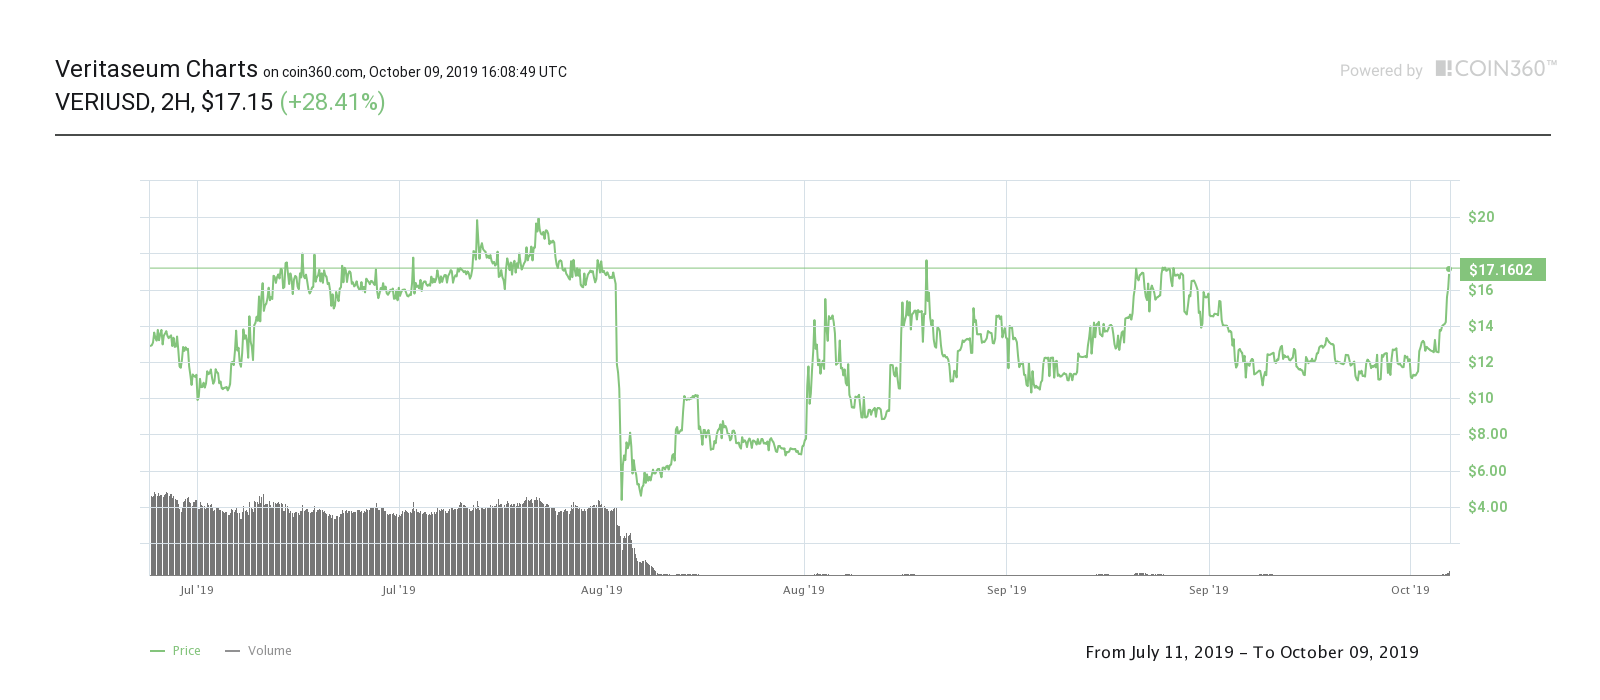 Veritaseum three-month price chart